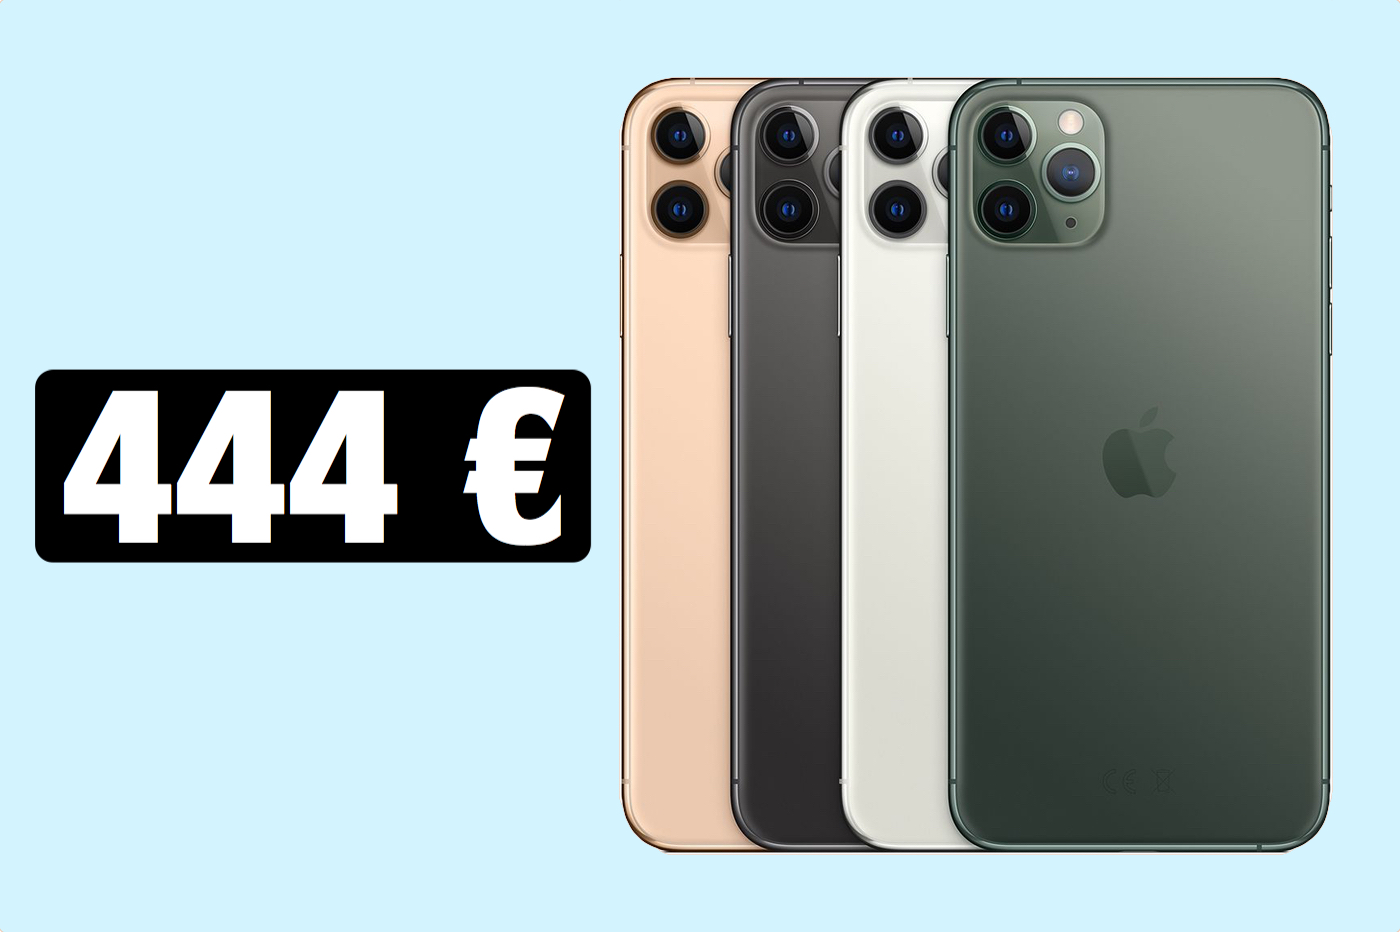 iPhone 11 Pro Max cout de fabrication